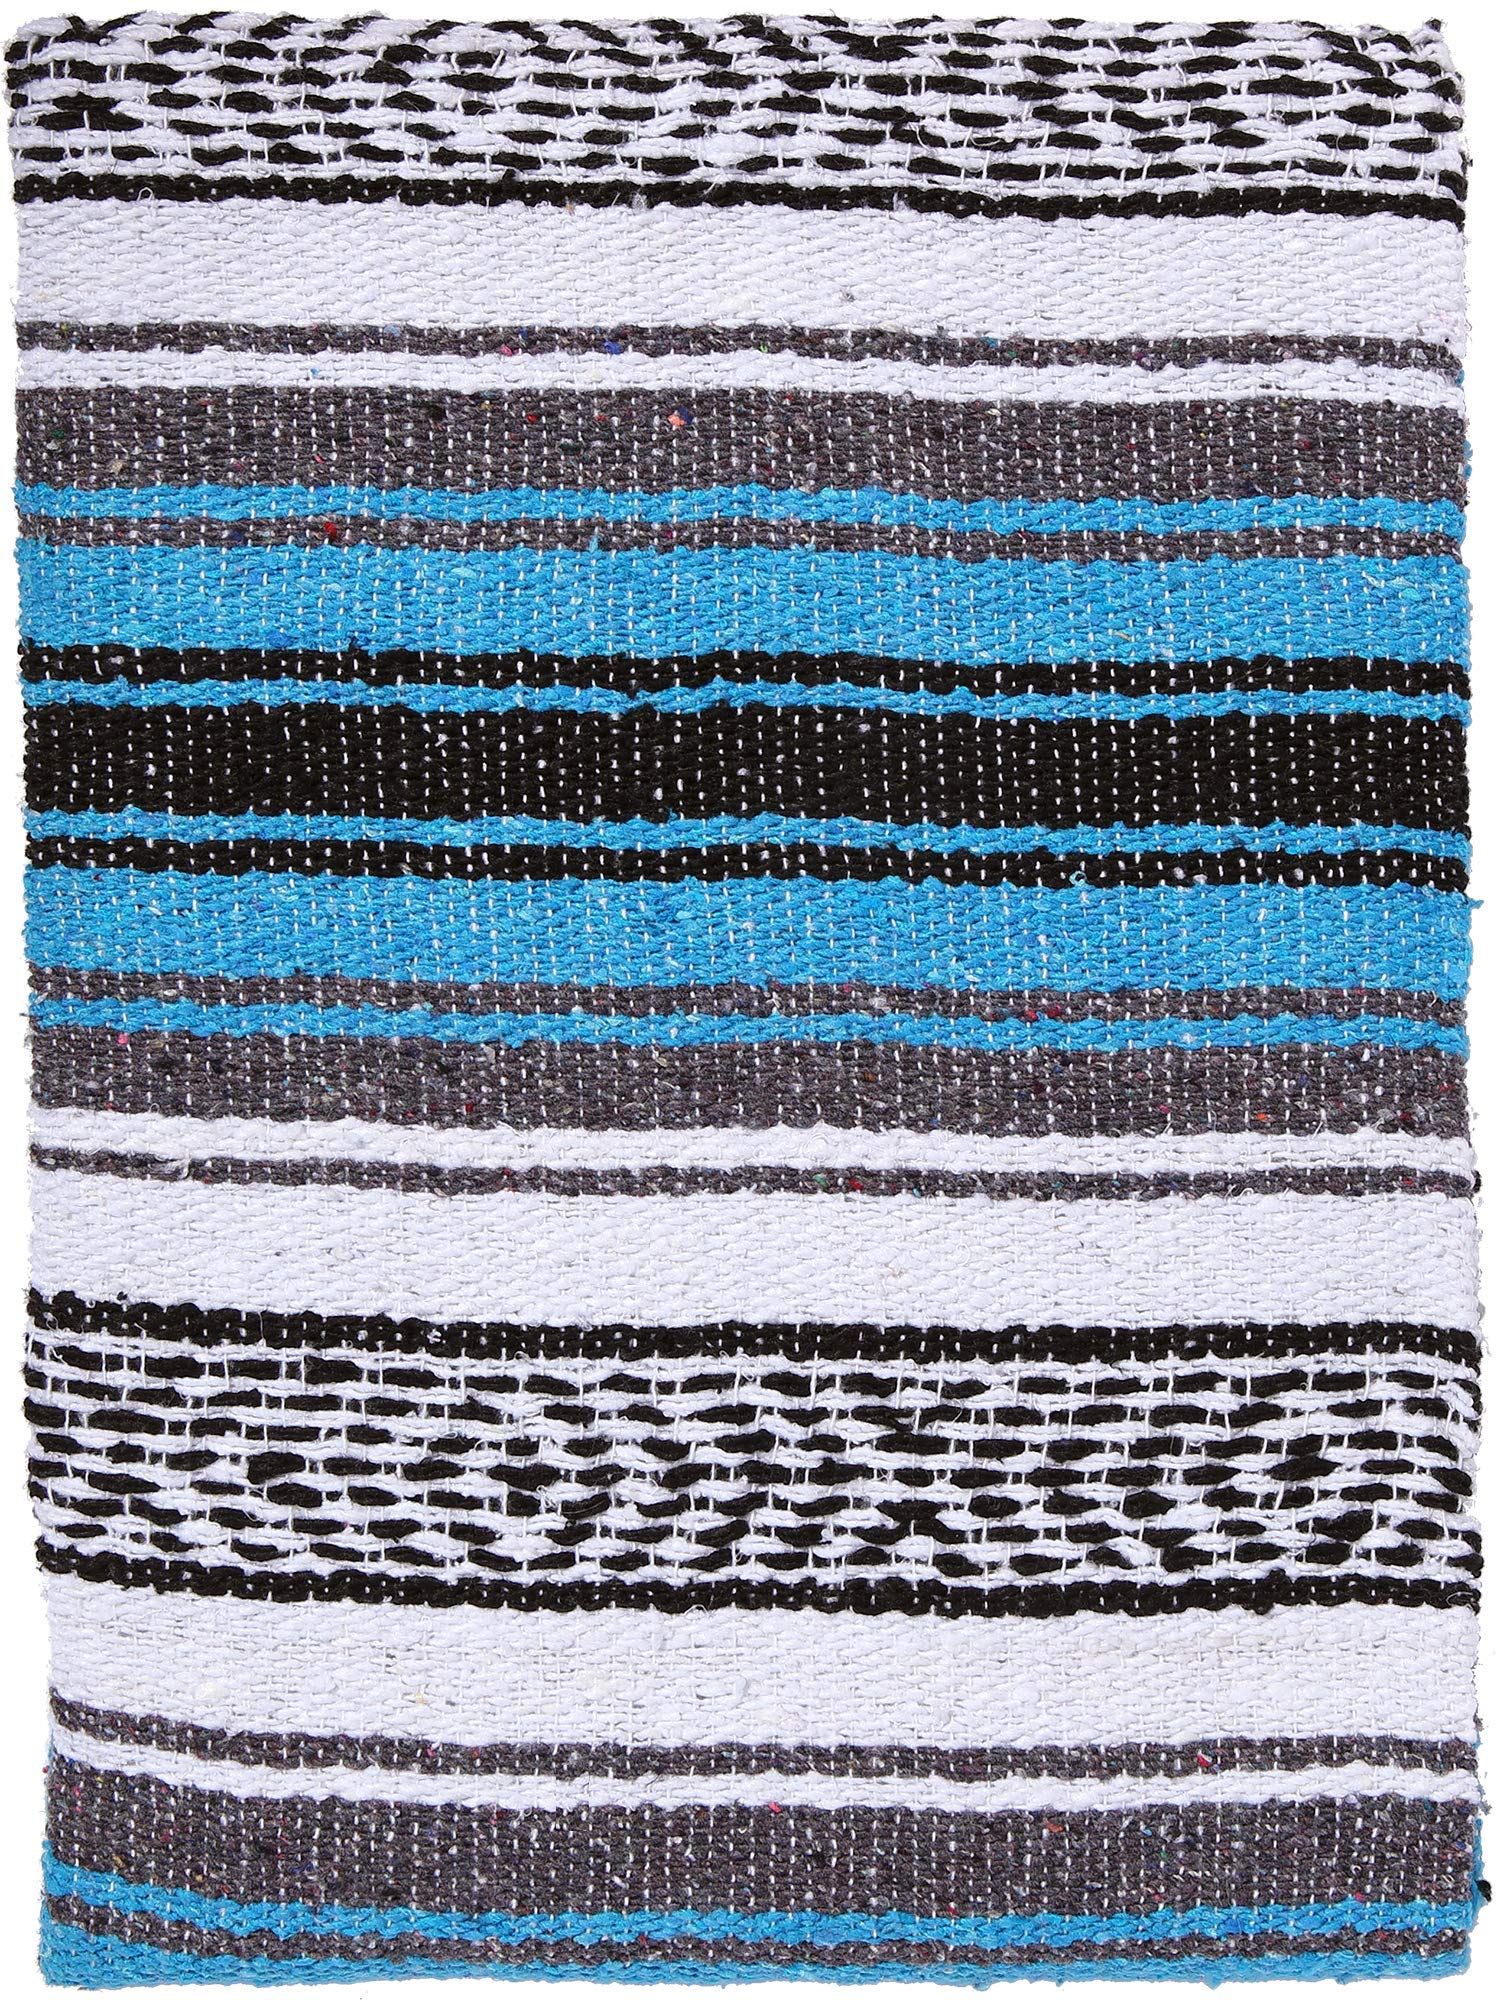 El Paso Designs Genuine Mexican Falsa Blanket - Yoga Studio Blanket, Colorful, Soft Woven Serape Imported from Mexico (Blue) by El Paso Designs (Image #1)